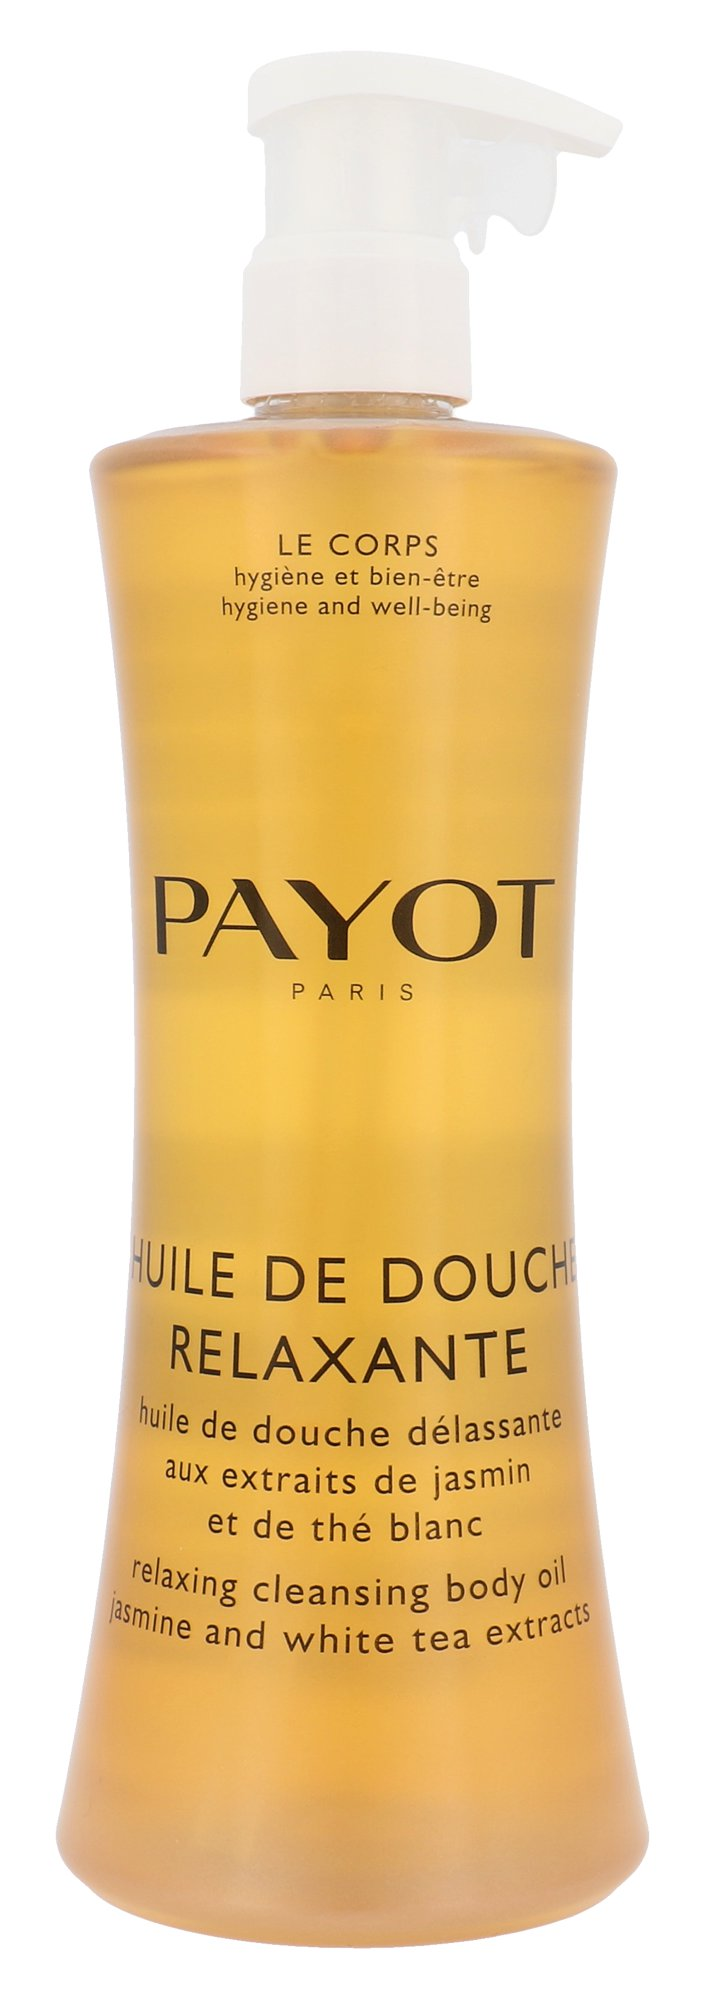 PAYOT Le Corps Relaxing Cleansing Body Oil, Testápoló olaj 400ml